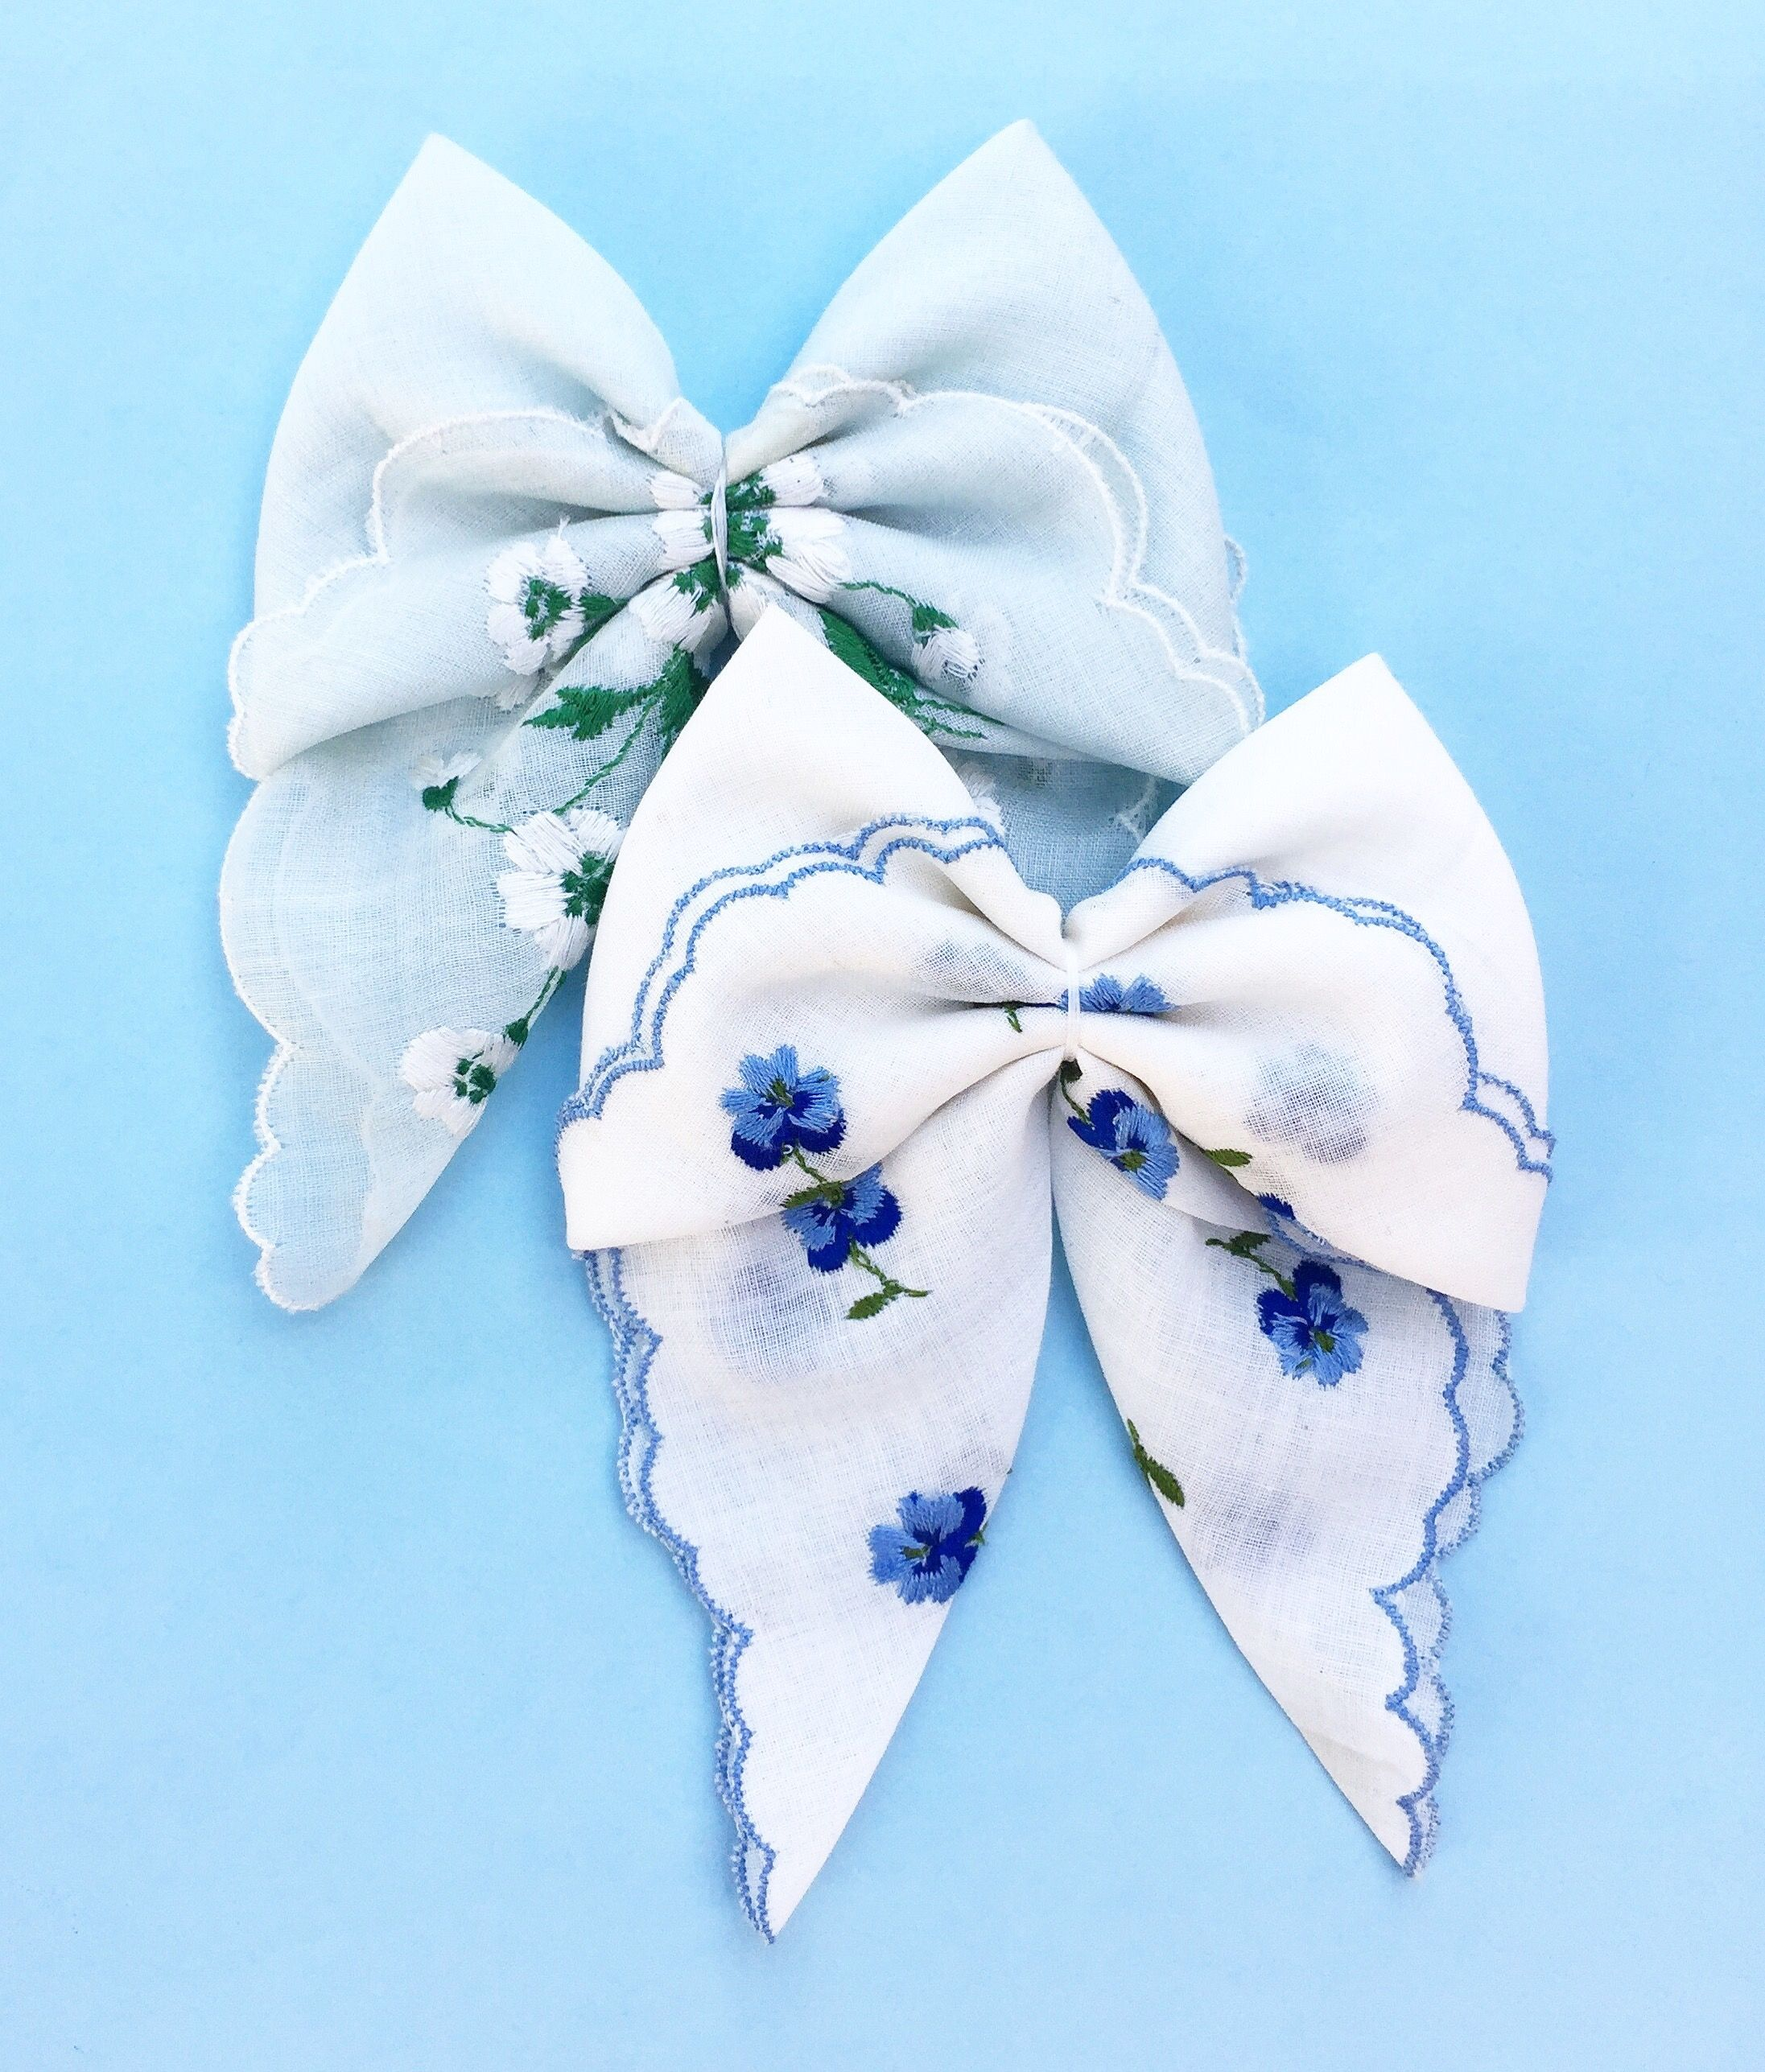 c9af13bb03a8 Dainty Lox handmade hair bows made from a vintage handkerchiefs. These bows  can be made into a nylon headband or hair clip and is the perfect accessory  for ...